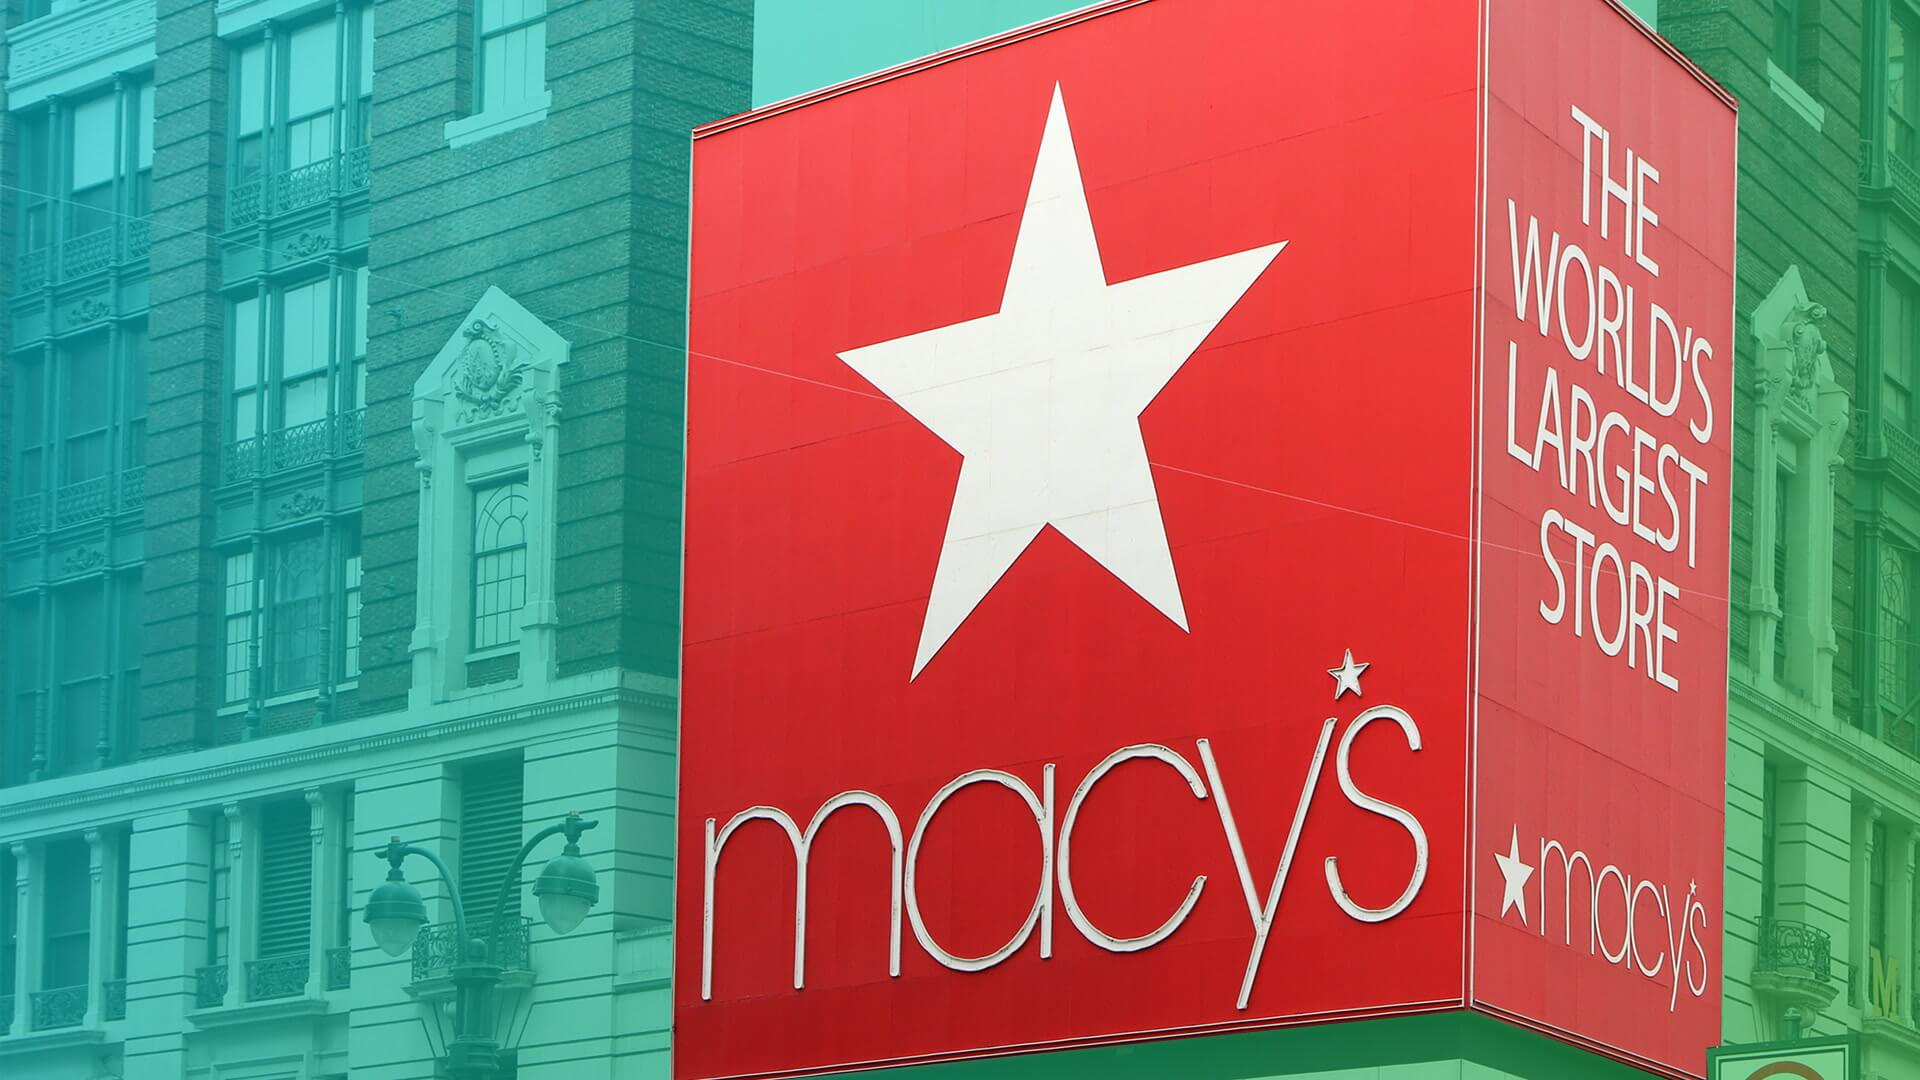 81aa743ccfa44 Macy s to Close More Stores After Poor Sales